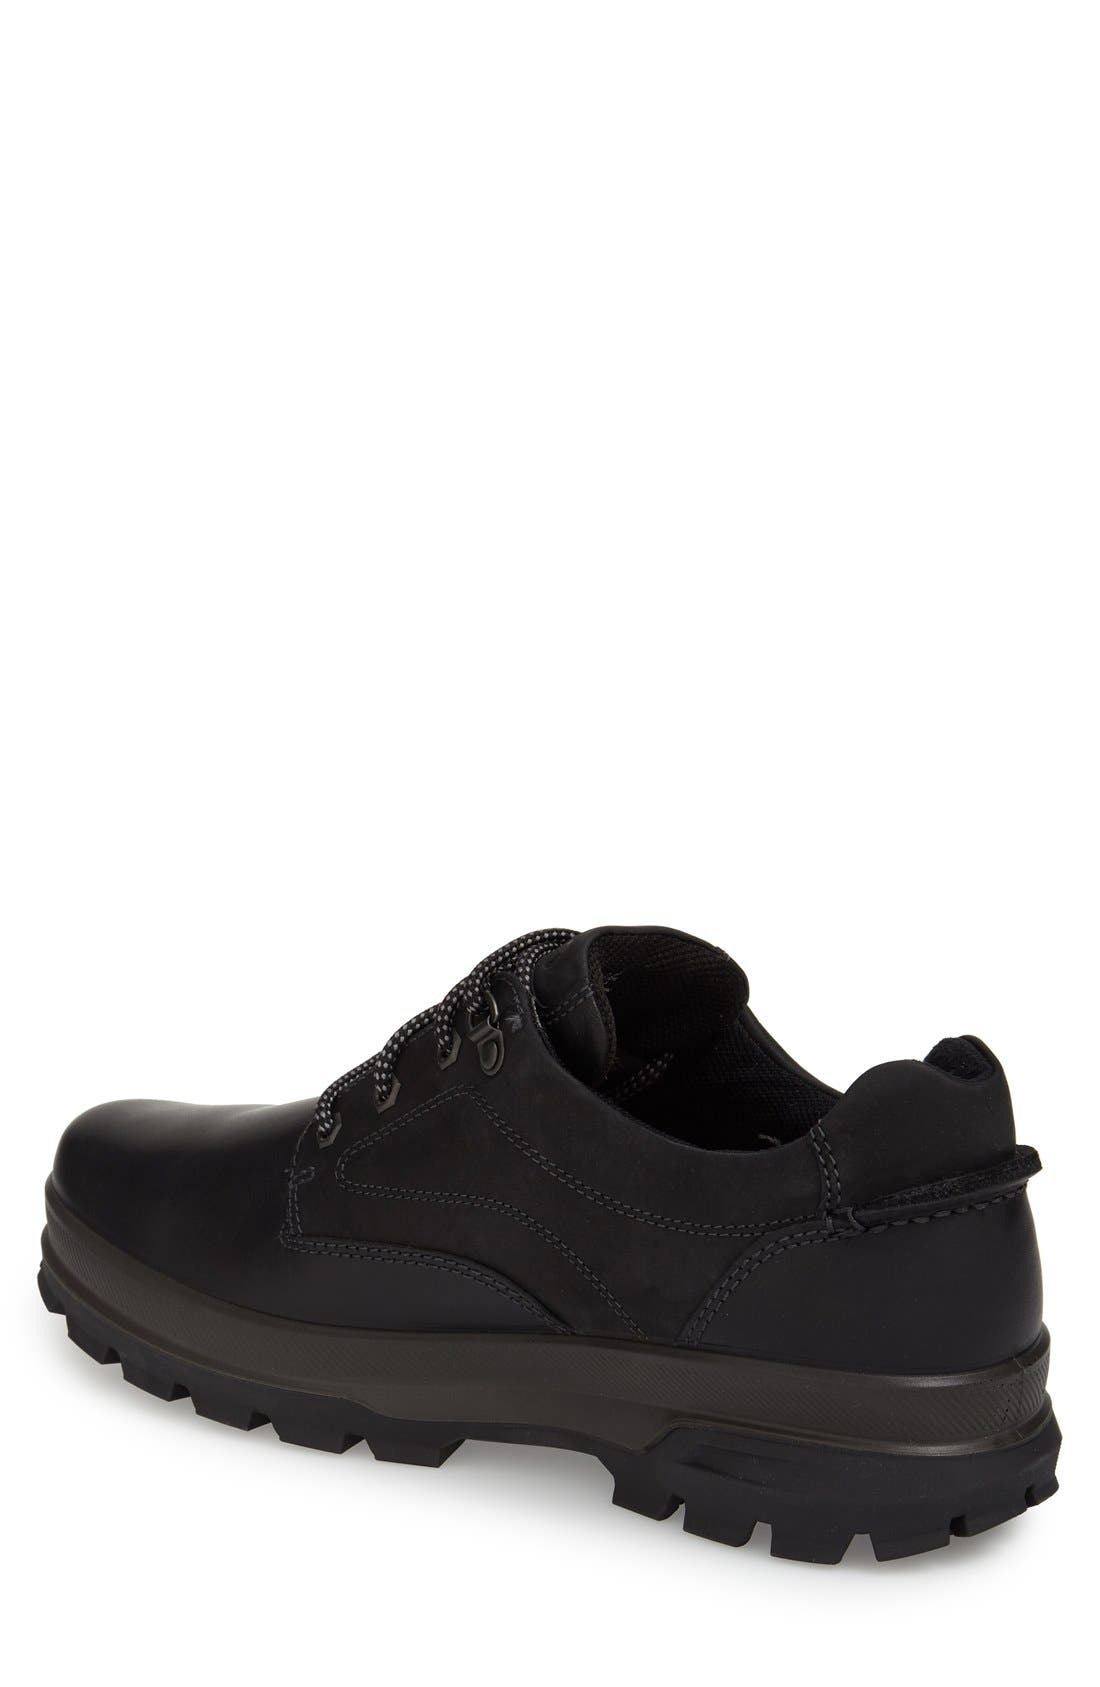 'Rugged Track GTX' Oxford,                             Alternate thumbnail 2, color,                             Black/ Black Leather